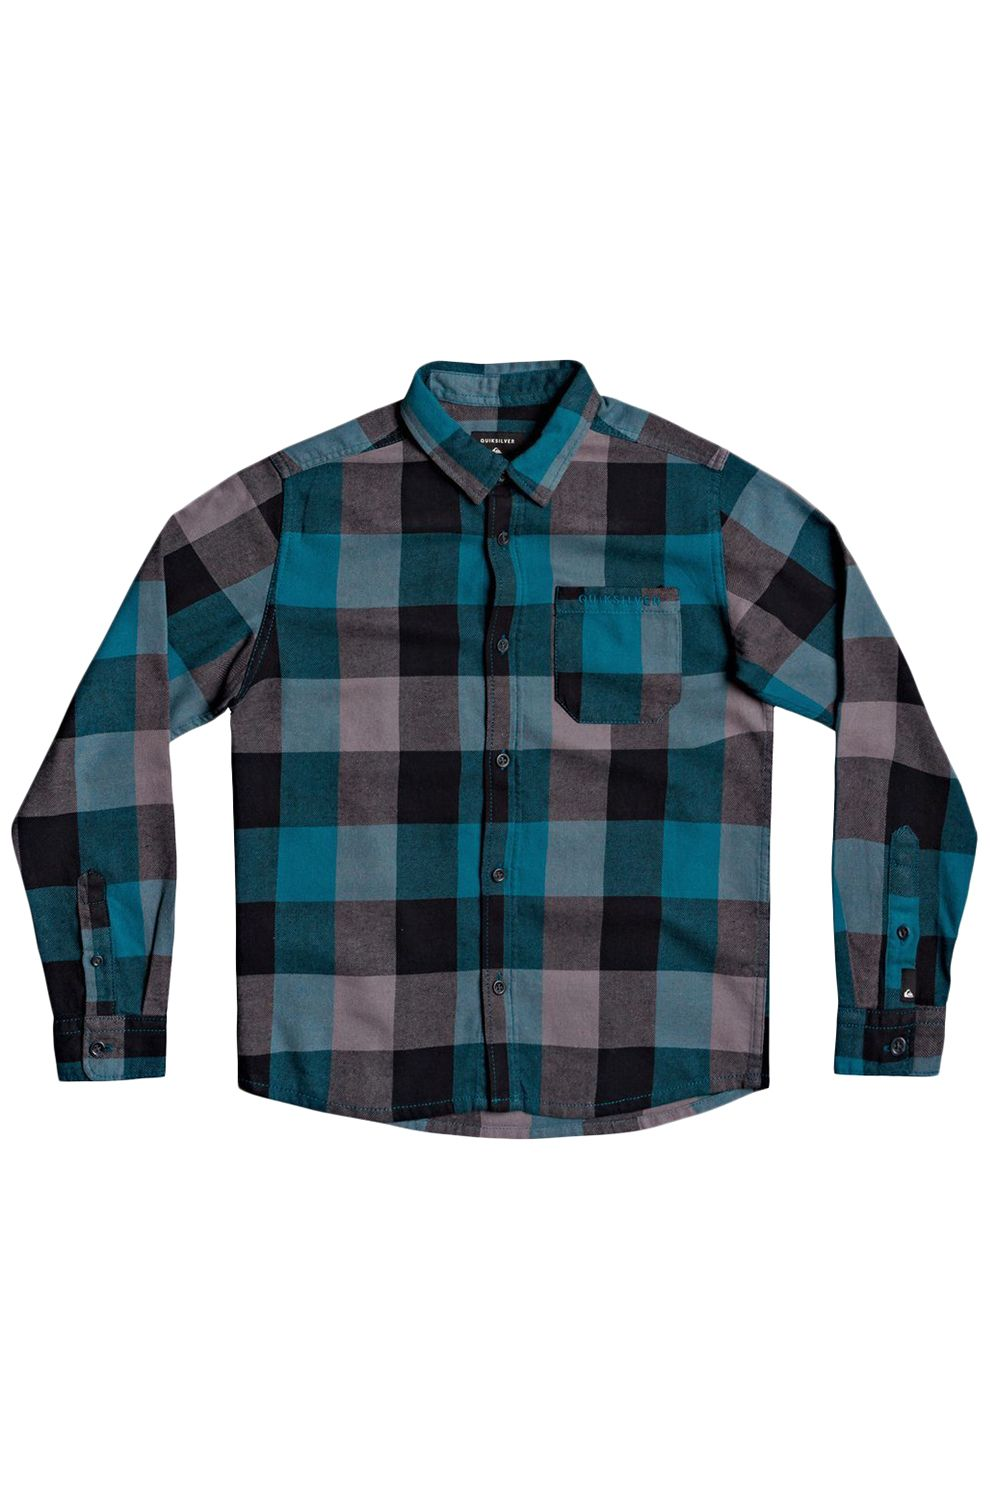 Quiksilver Shirt MOTHERFLY FLANNEL Blue Coral Motherfly